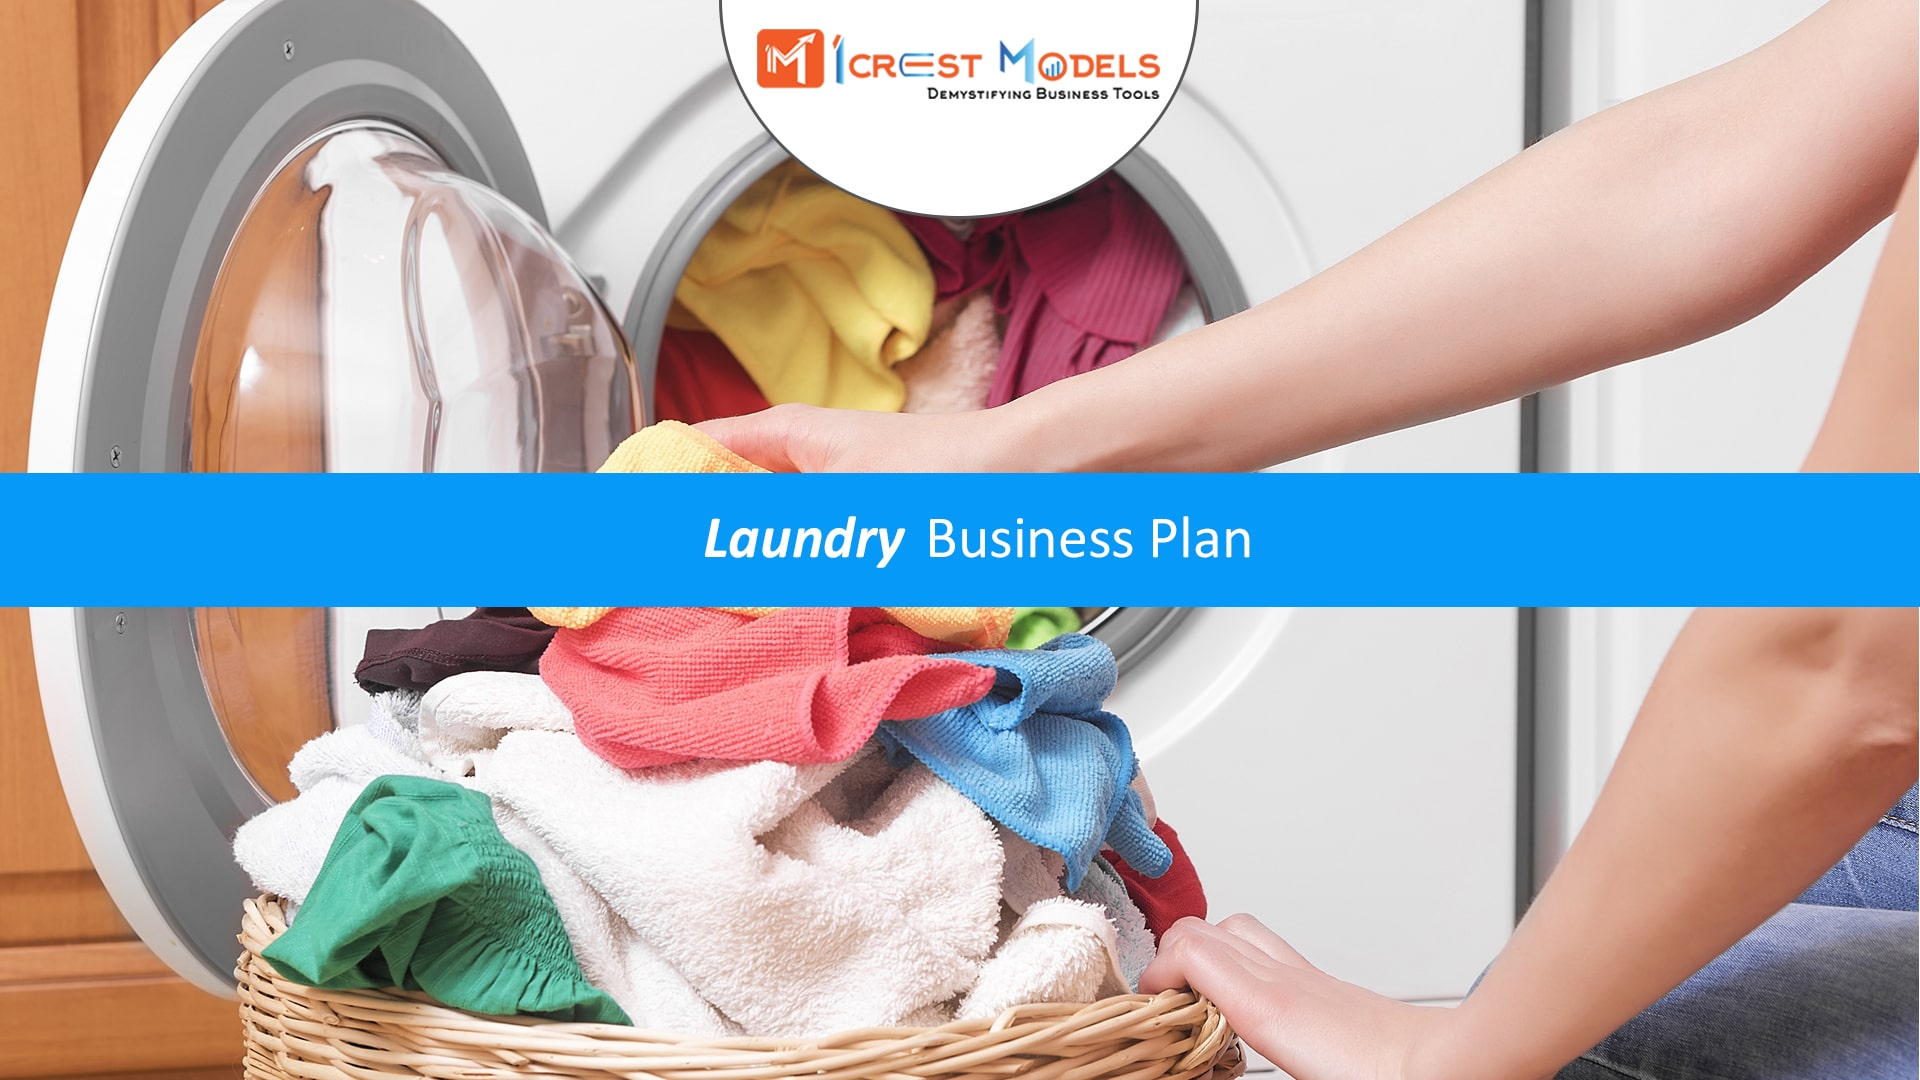 Business Plan For Laundry Business